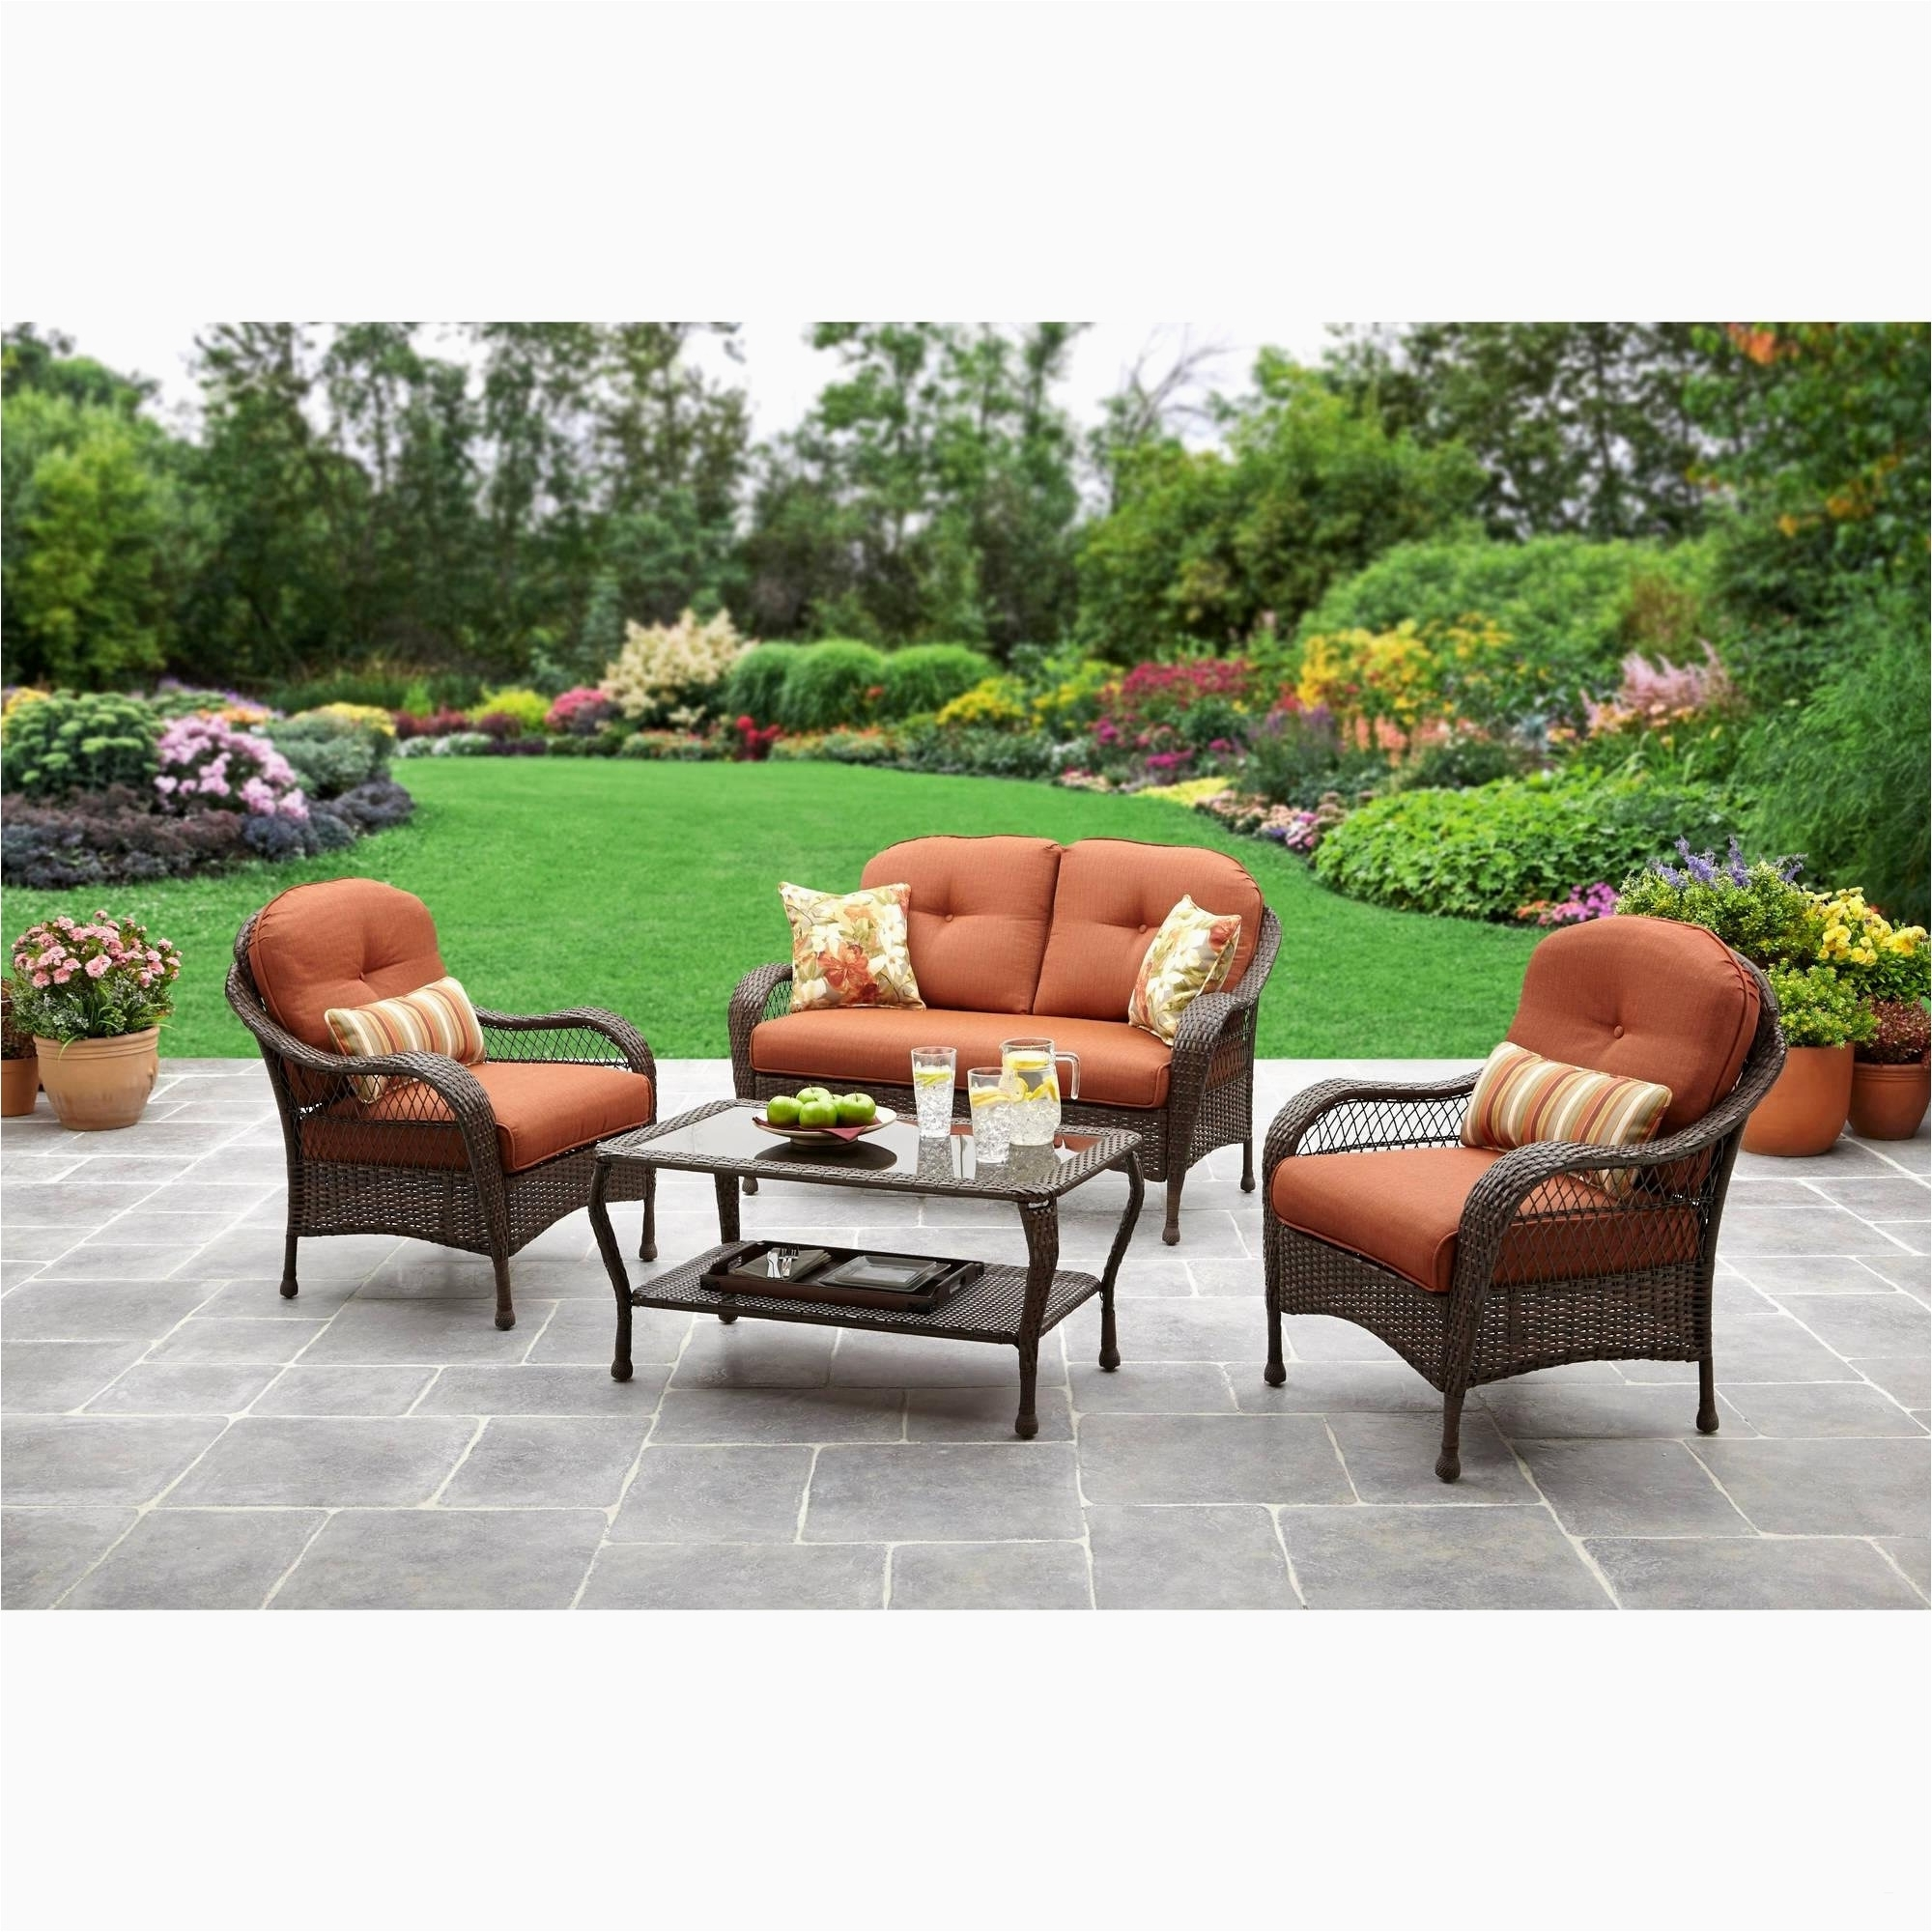 Patio Conversation Sets With Umbrella For Well Known Patio Umbrellas Costco – Awesome Conversation Sets Patio Furniture (View 13 of 20)